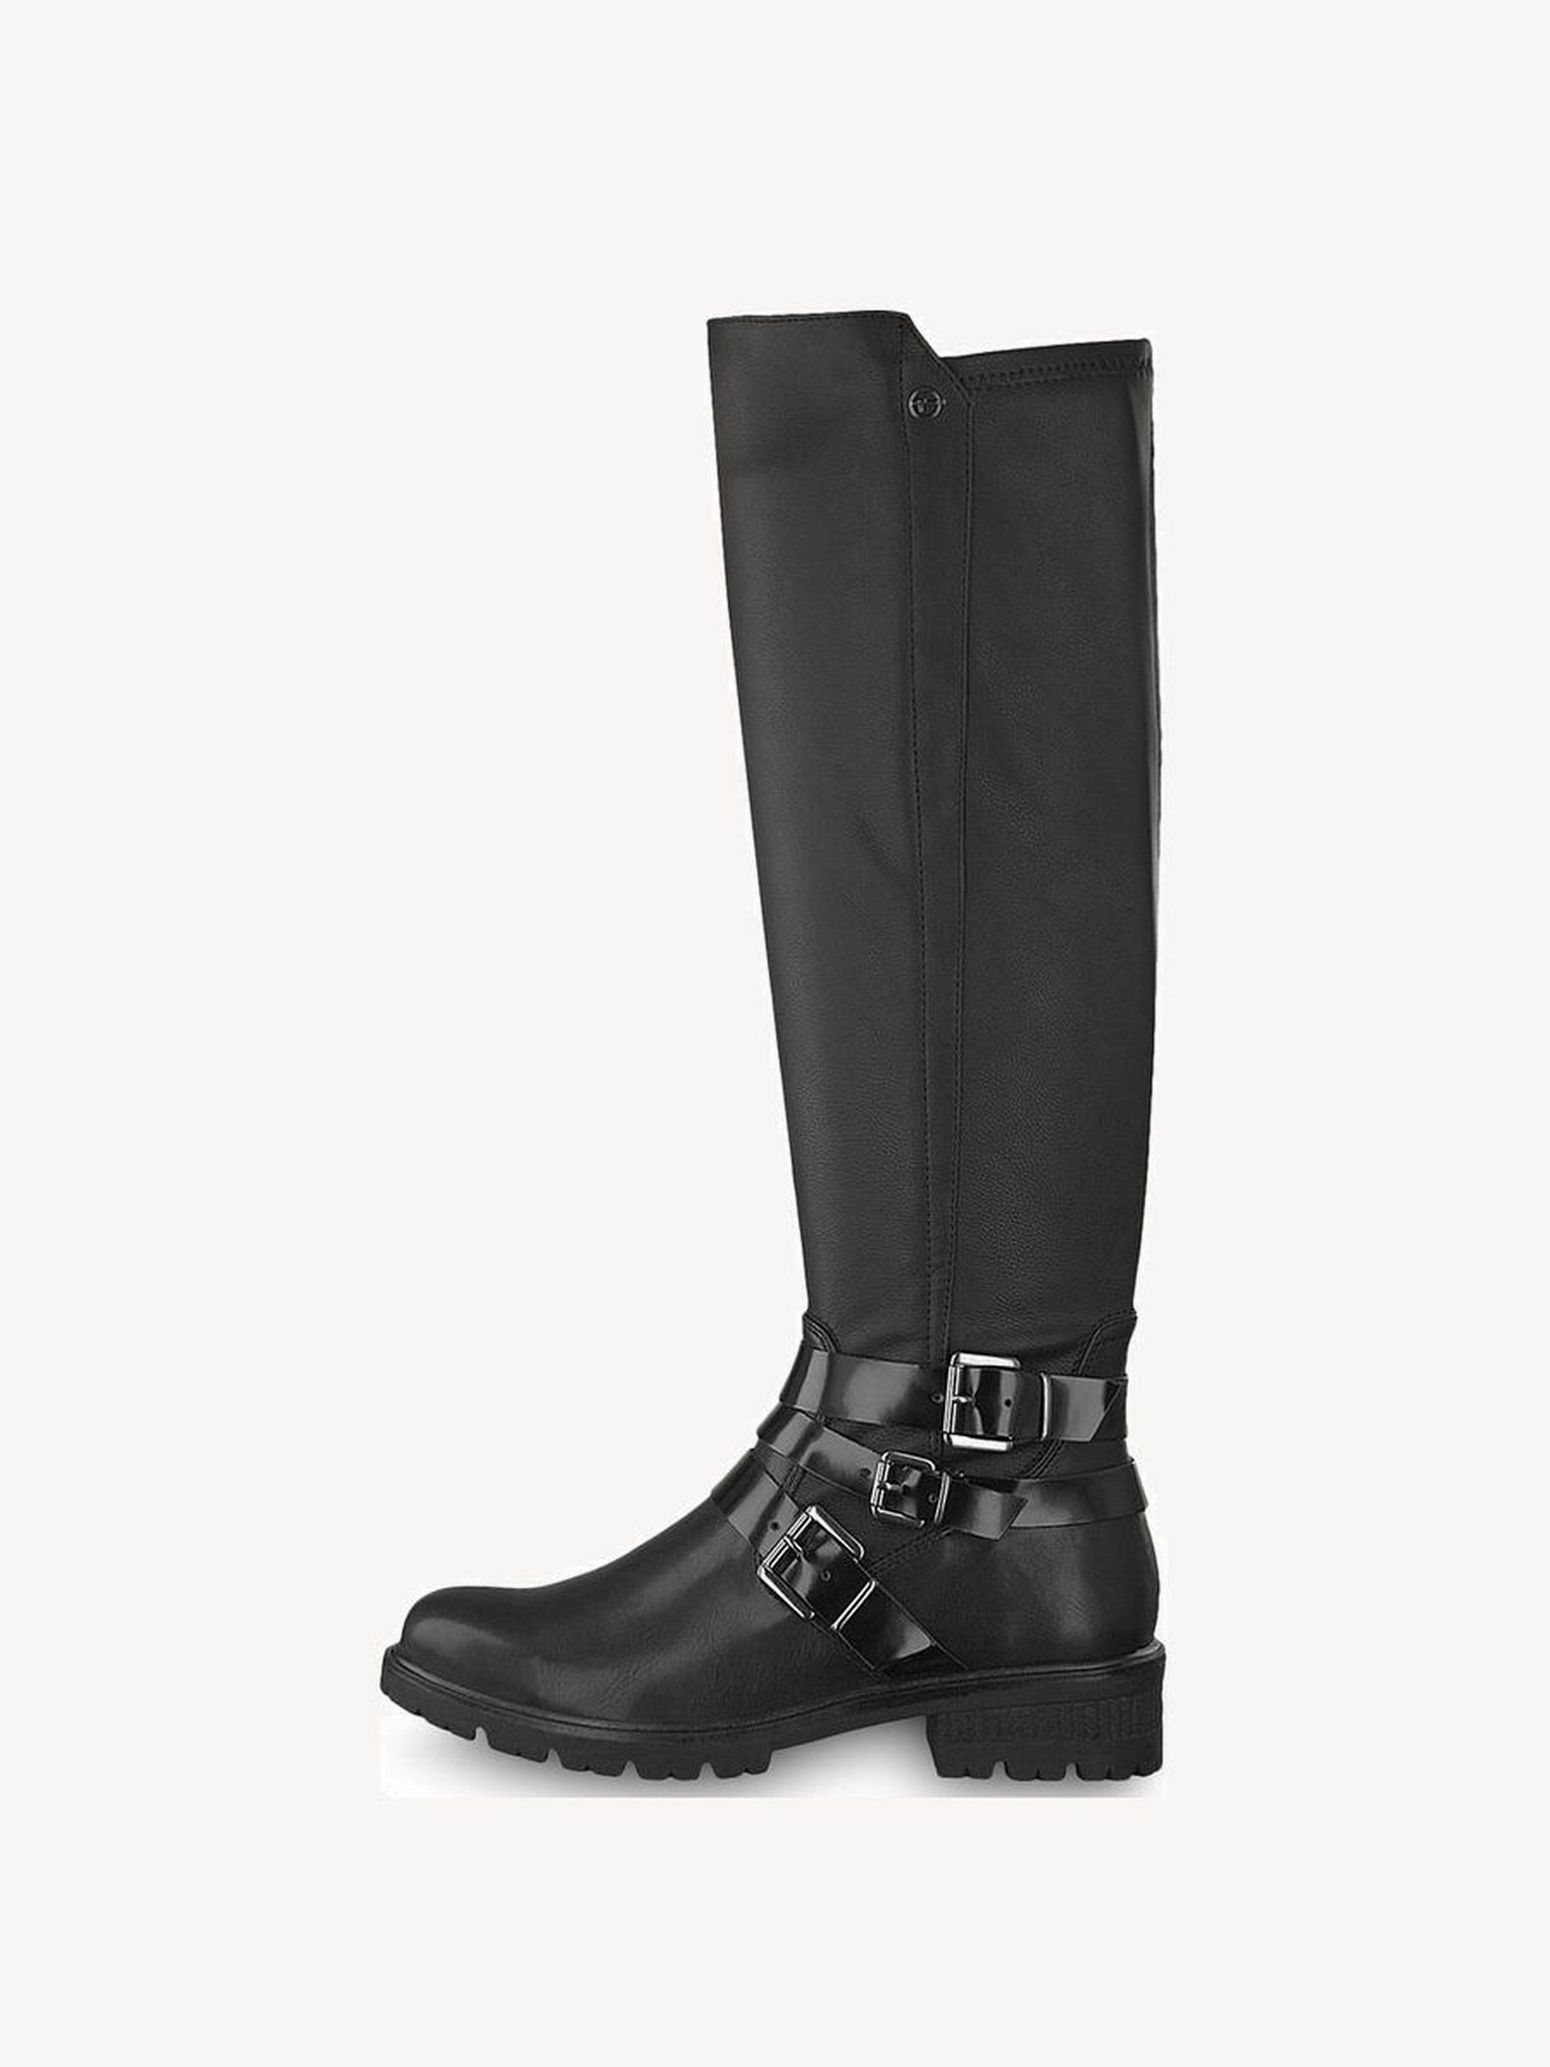 detailed look 825ce e0bcf Stiefel